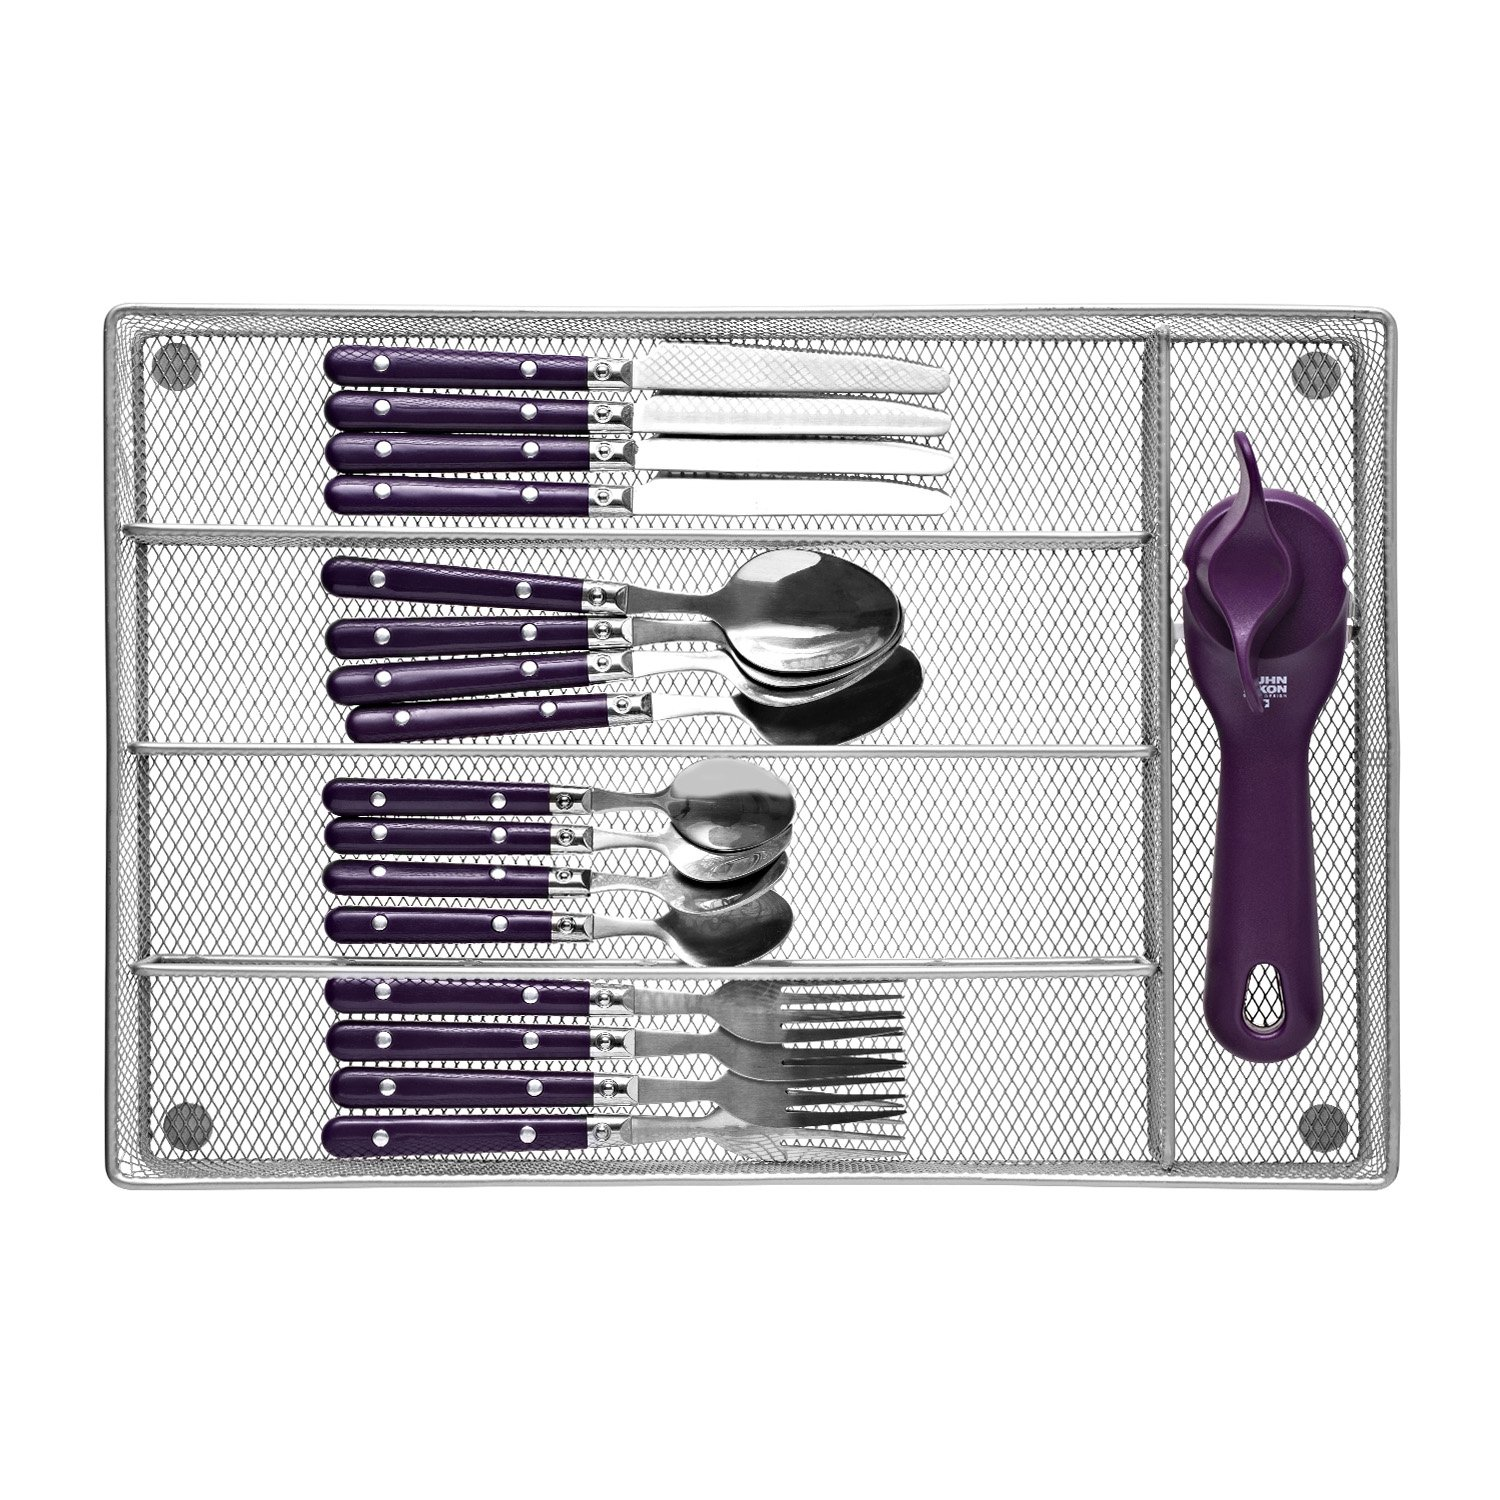 Cutlery Tray by Mindspace, 5 Compartments Utensil Organizer | The Mesh Collection, Silver